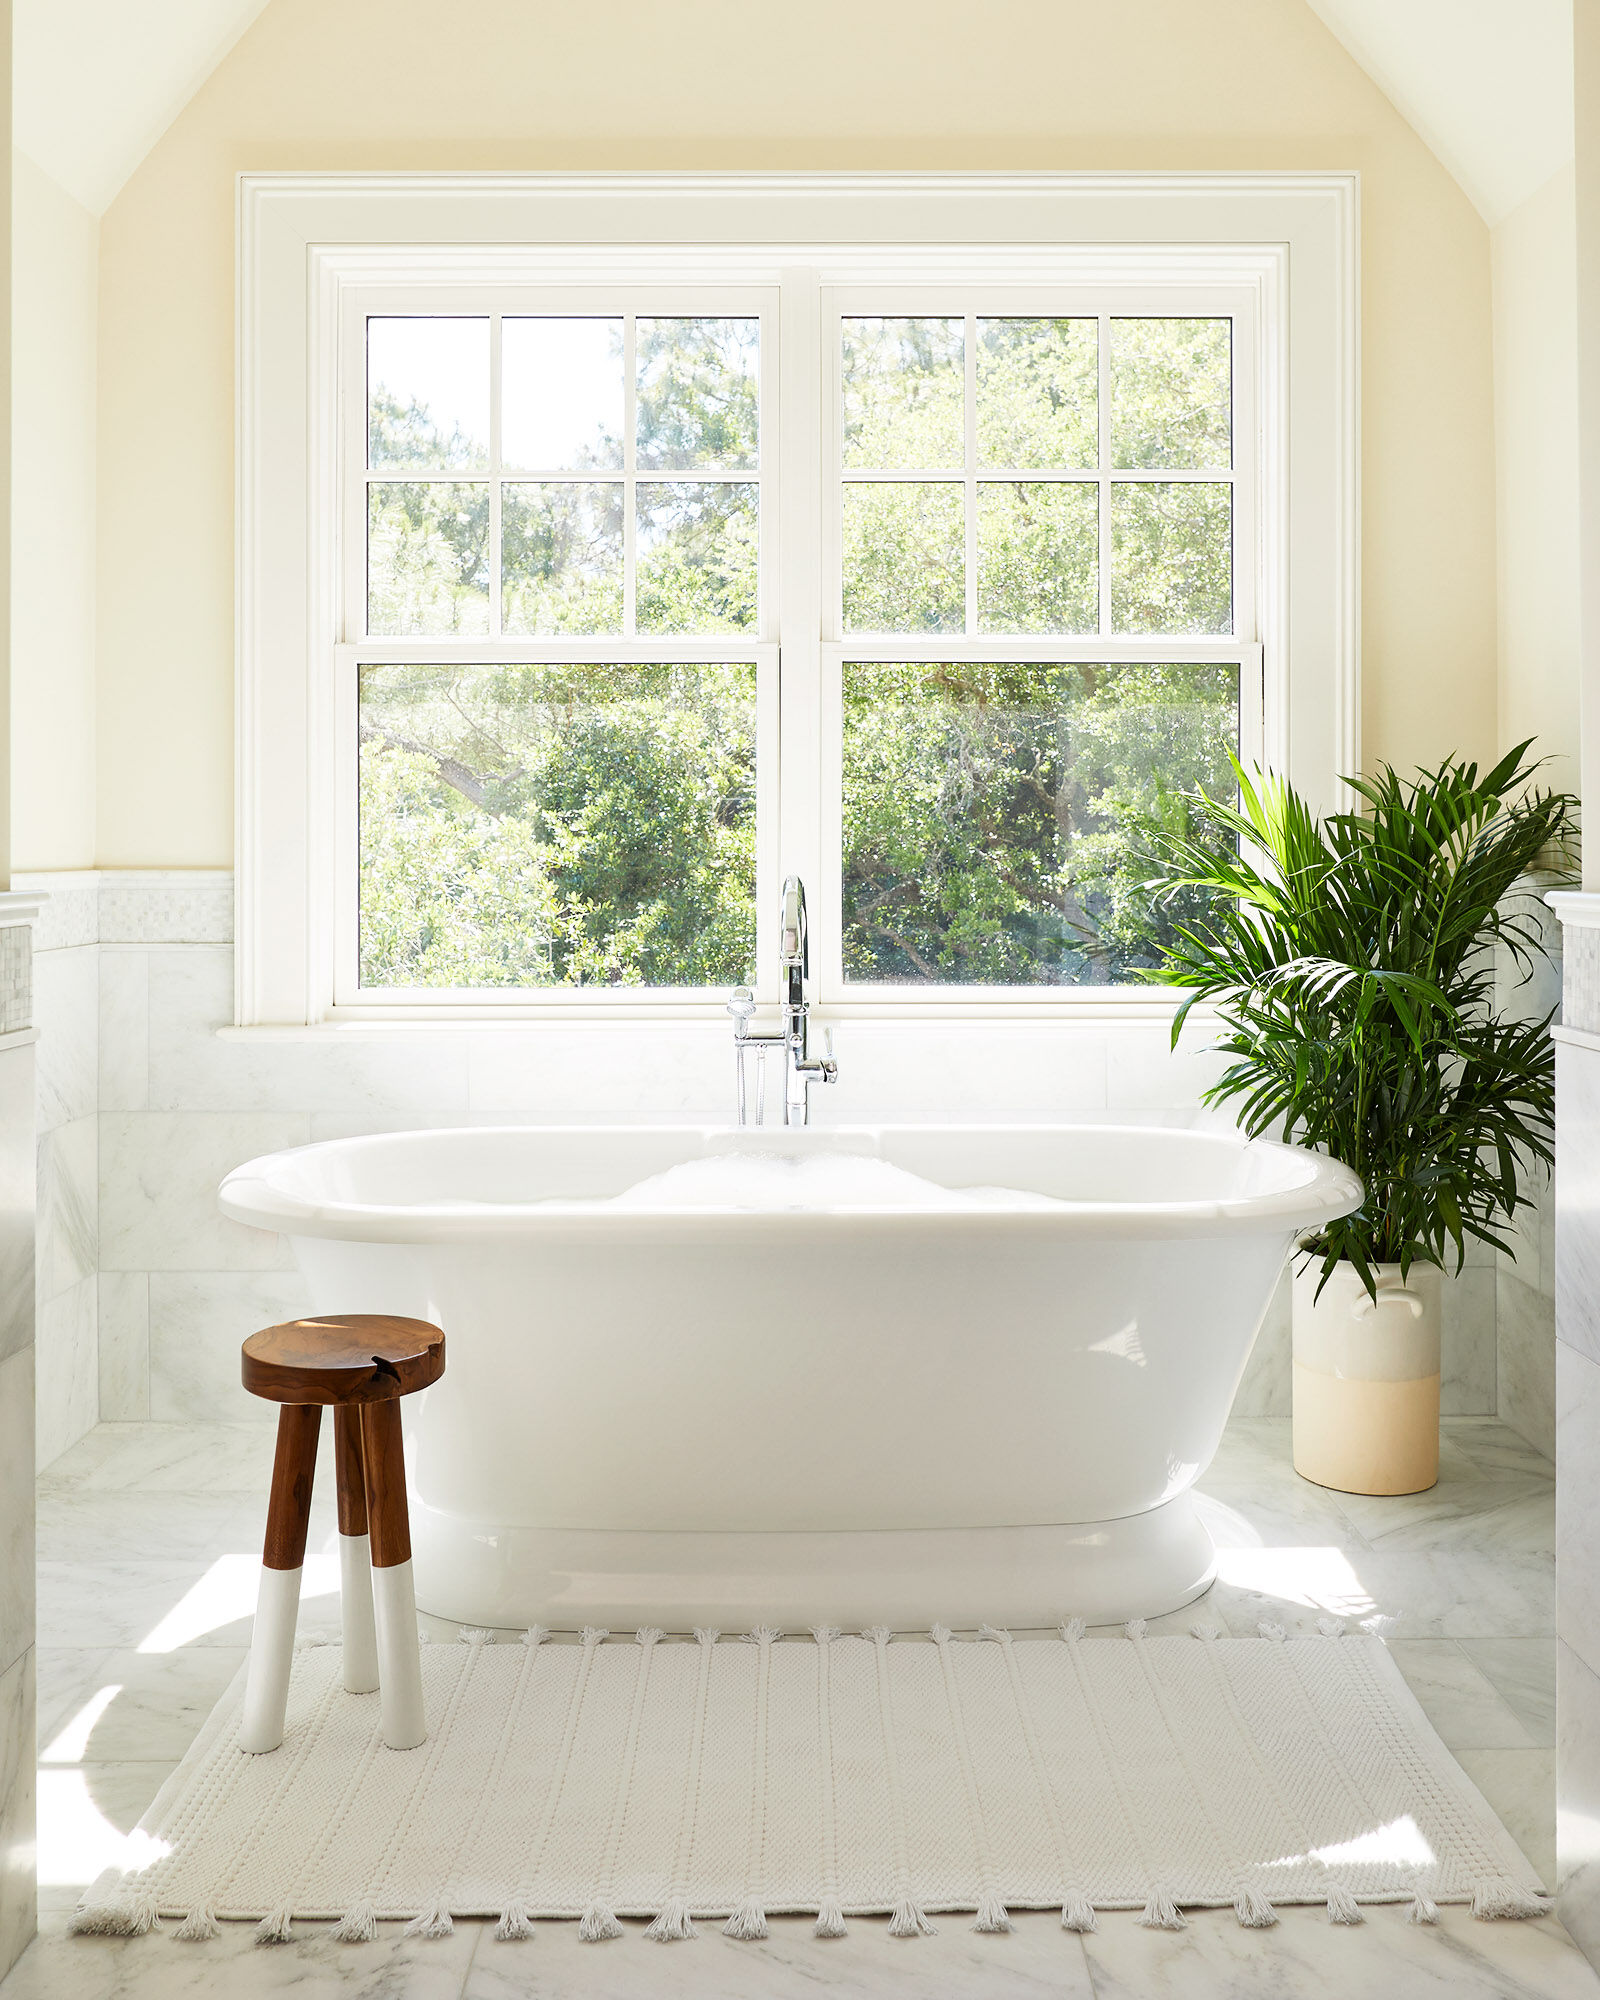 Dip-dyed stool next to soaker tub in luxurious white marble bath - Serena & Lily.